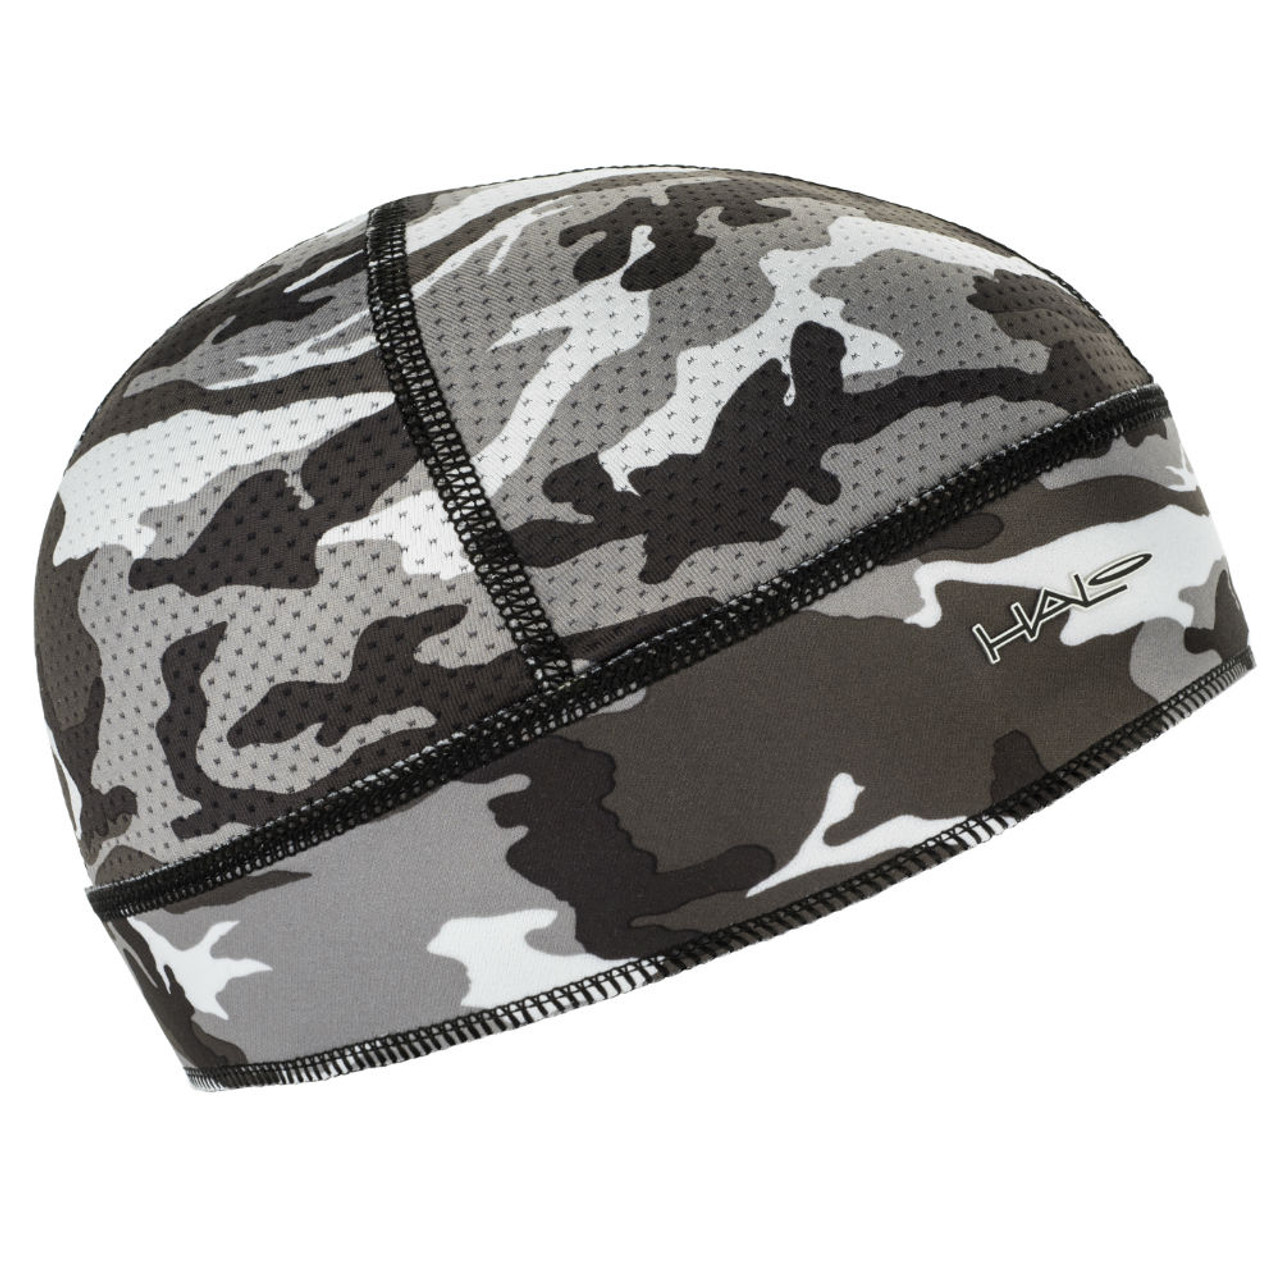 a20747a4453 A lightweight yet effective design allows it to fit comfortably under a  helmet